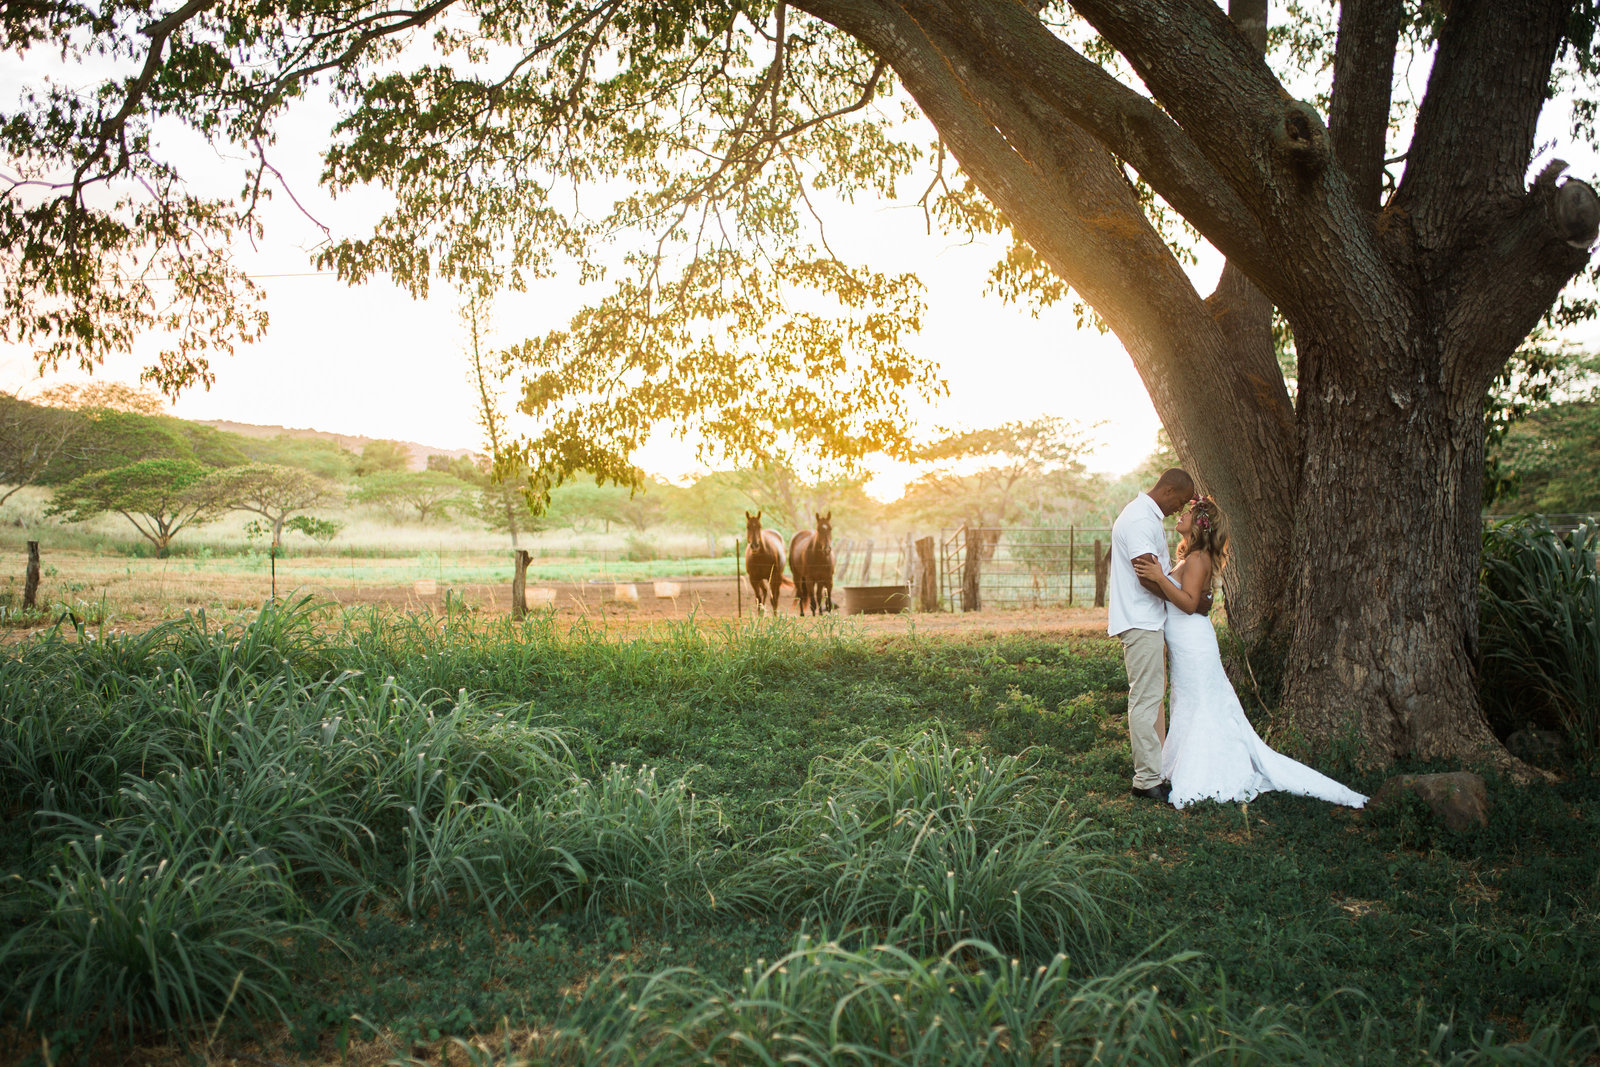 Dillingham Ranch Weddings in Hawaii